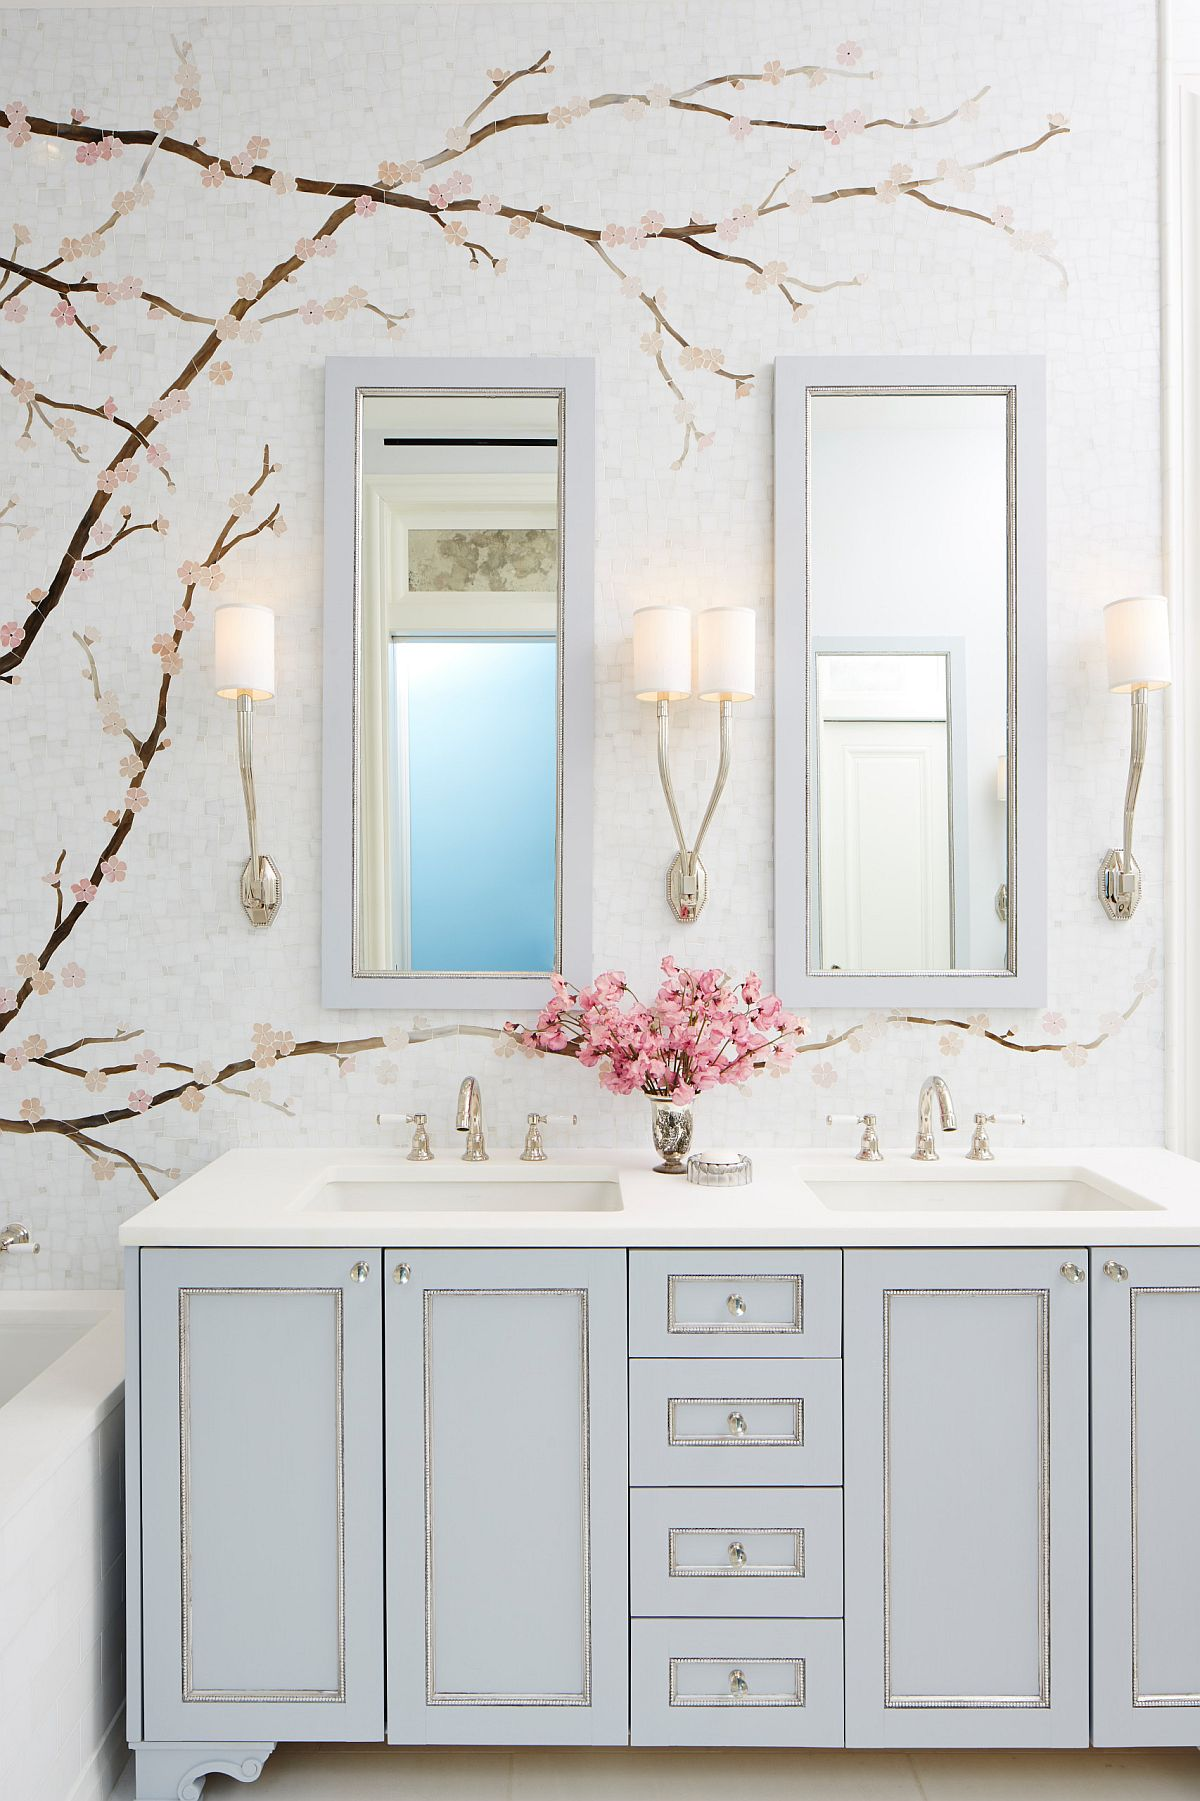 Vanity lighting in this exquisite contemporary bathroom plays into the overall whimsical narrative